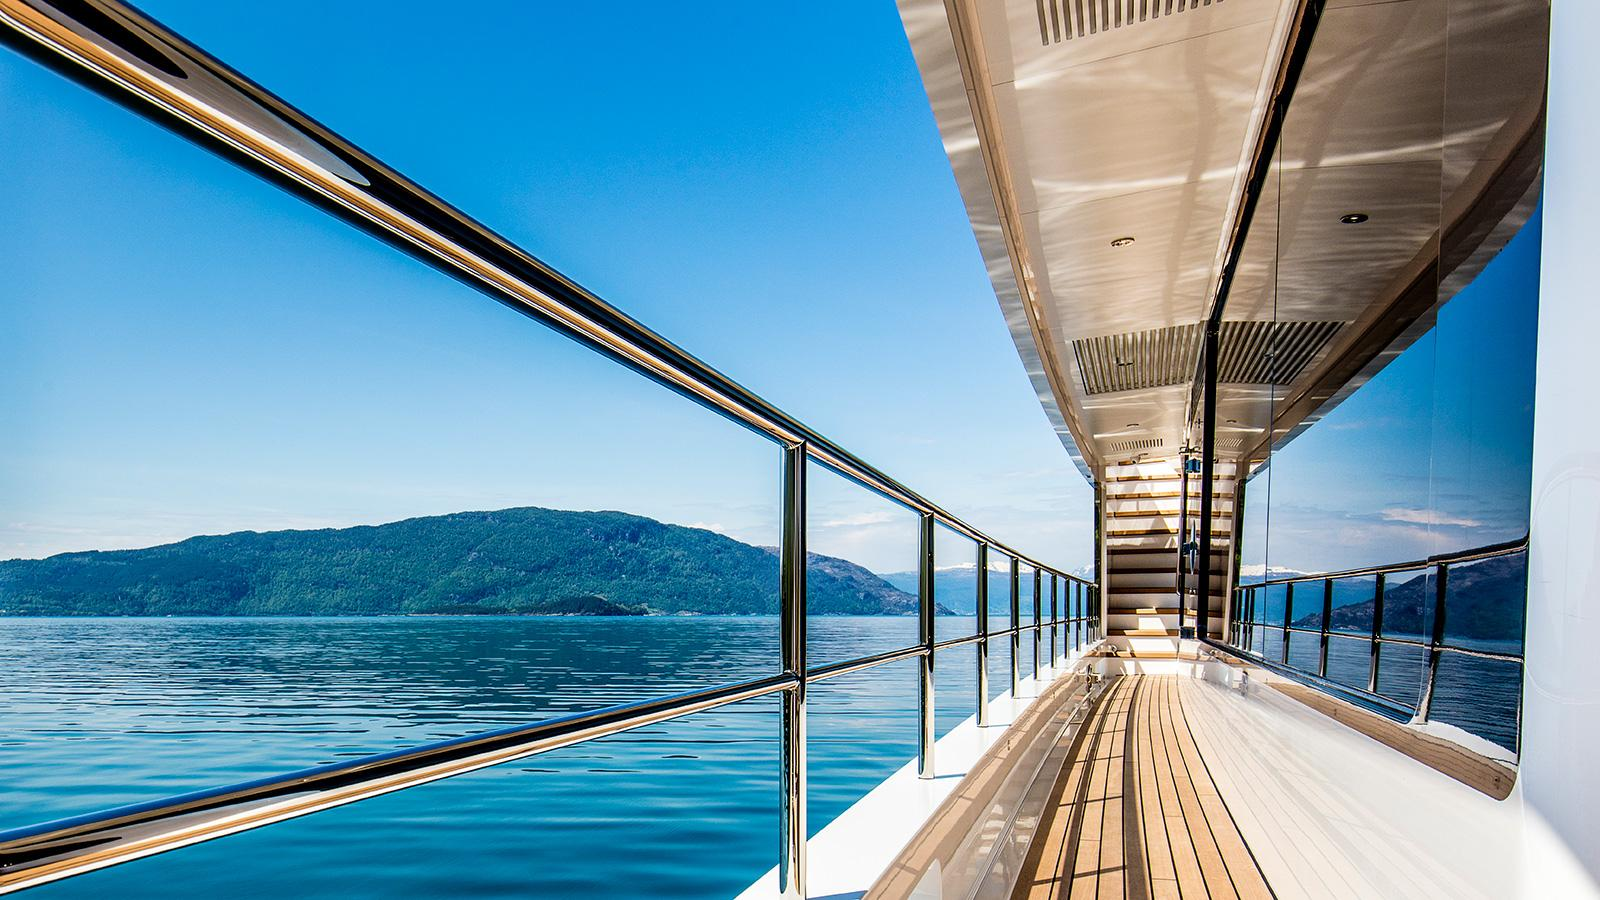 Kamino-super-yacht-feadship-2016-34-metres-side-decks